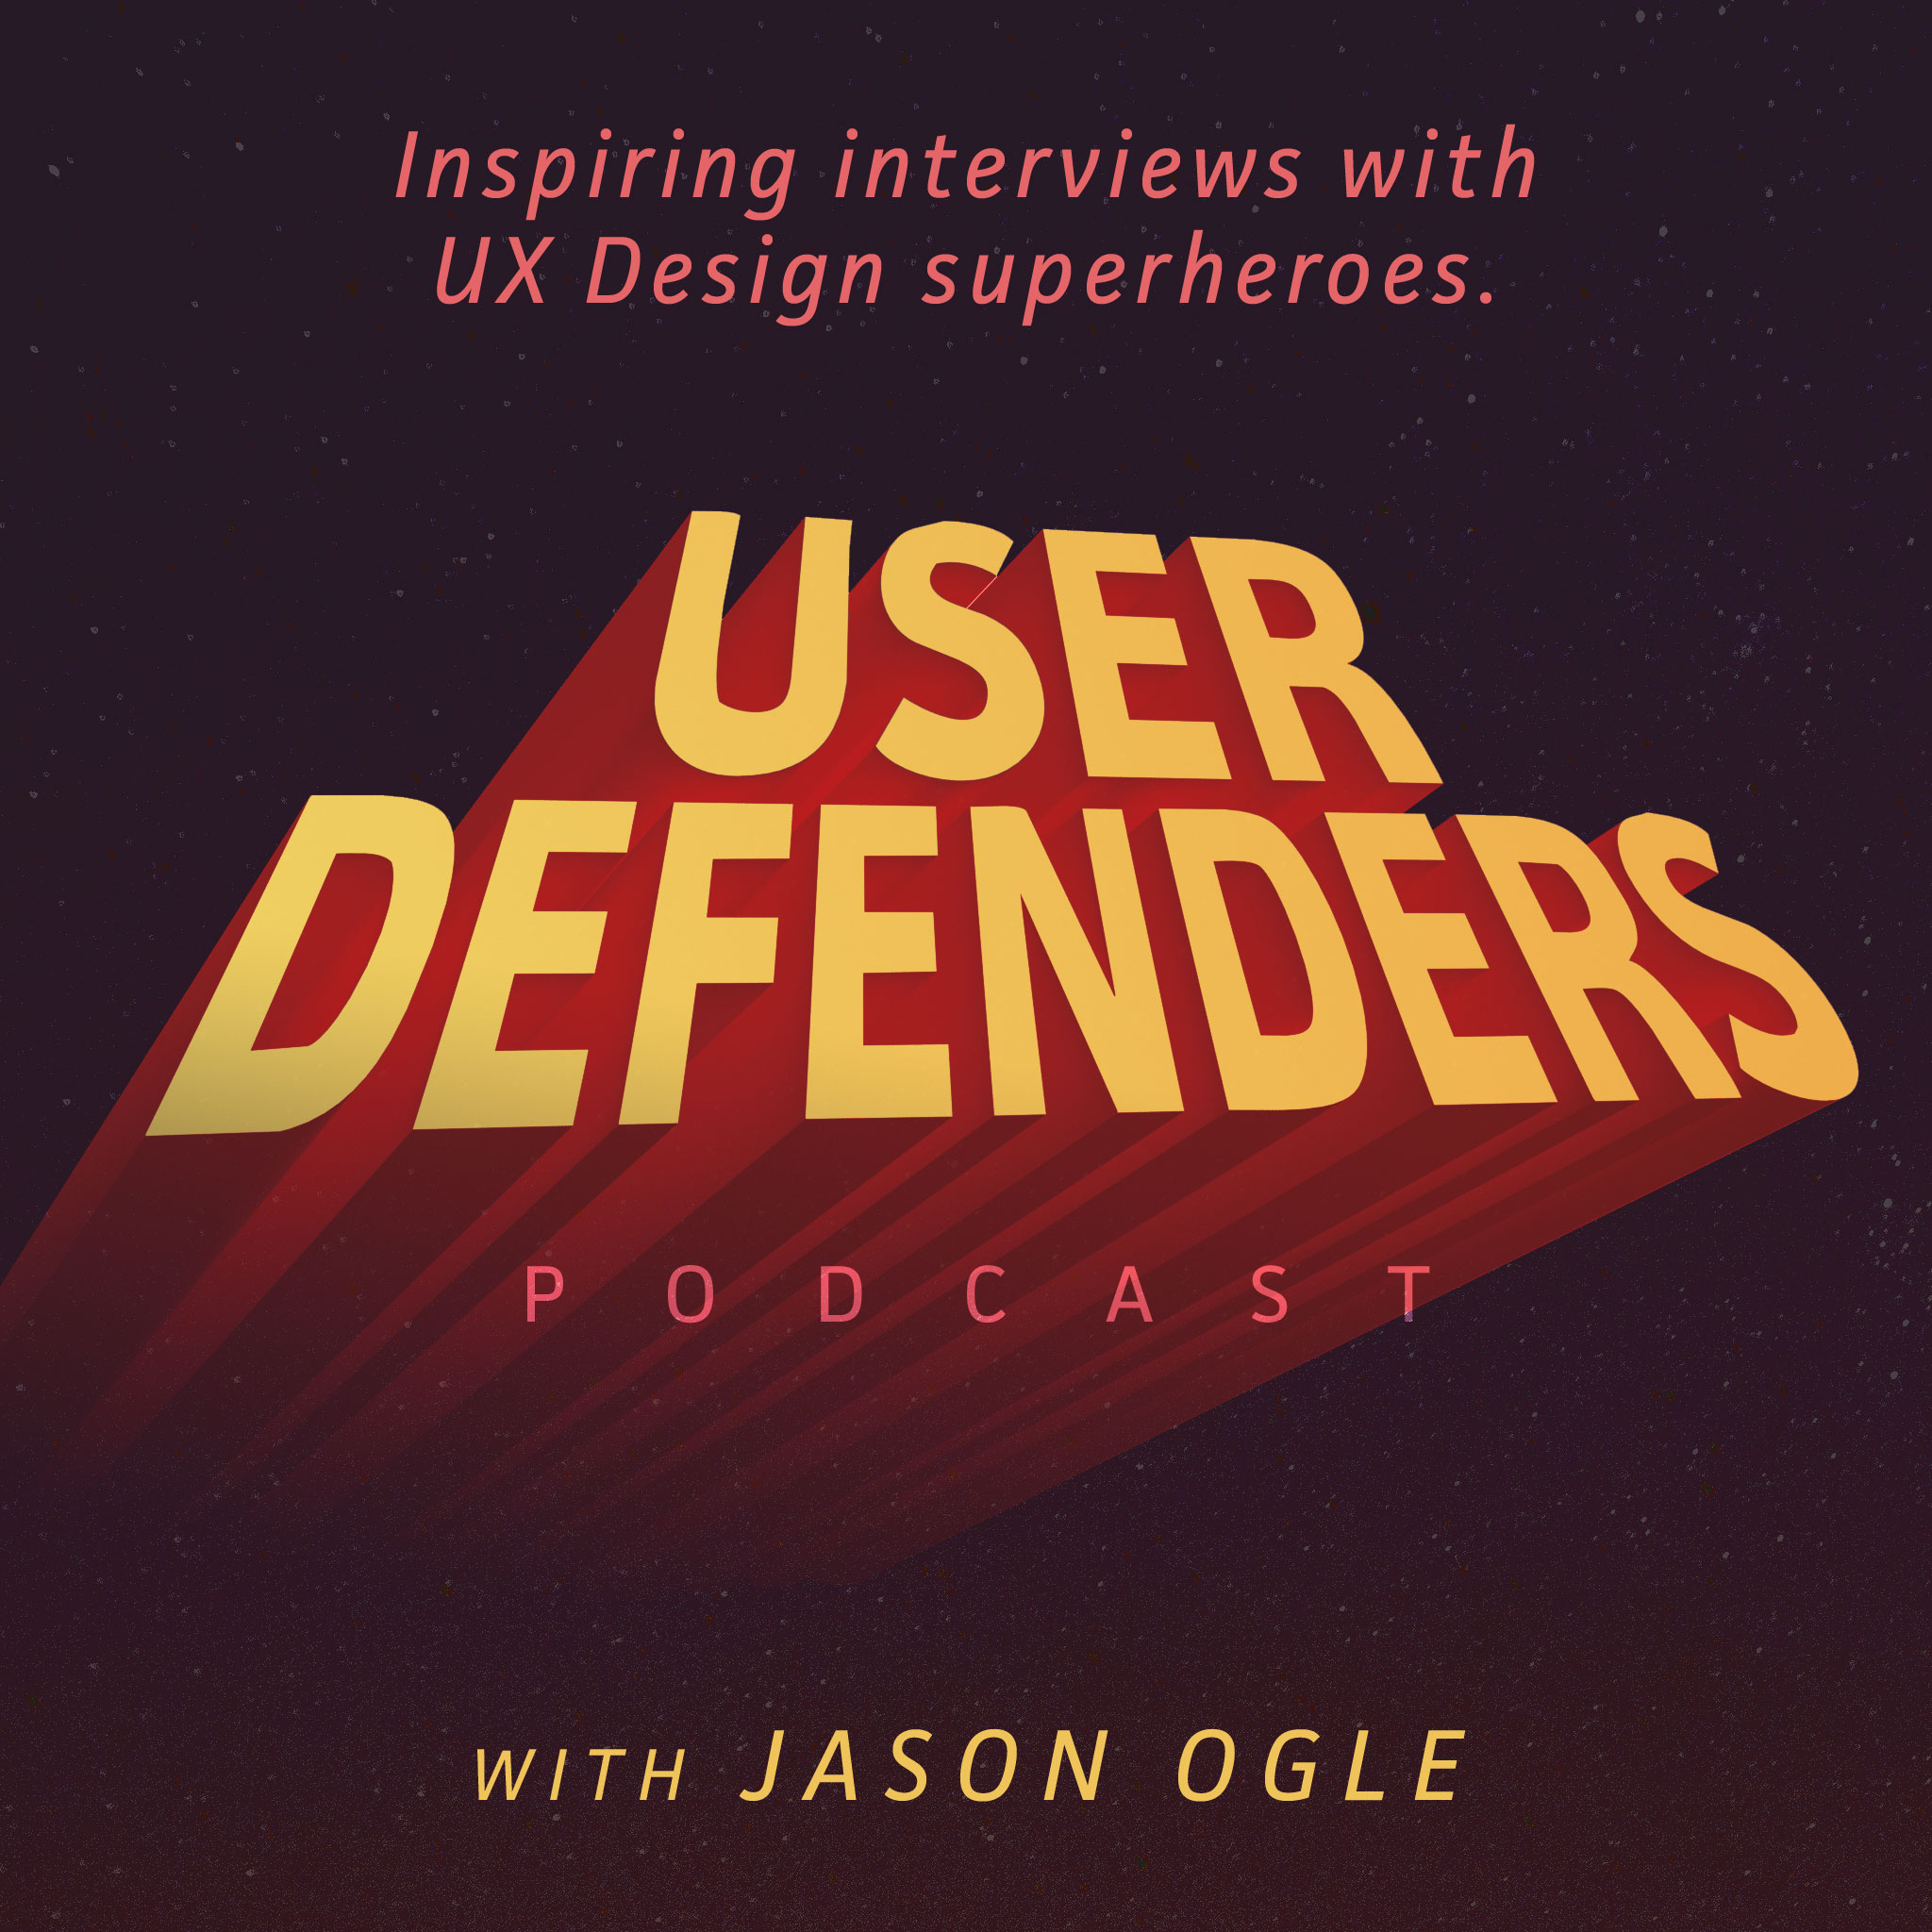 Details Make The Difference user defenders: the little details can make a big difference